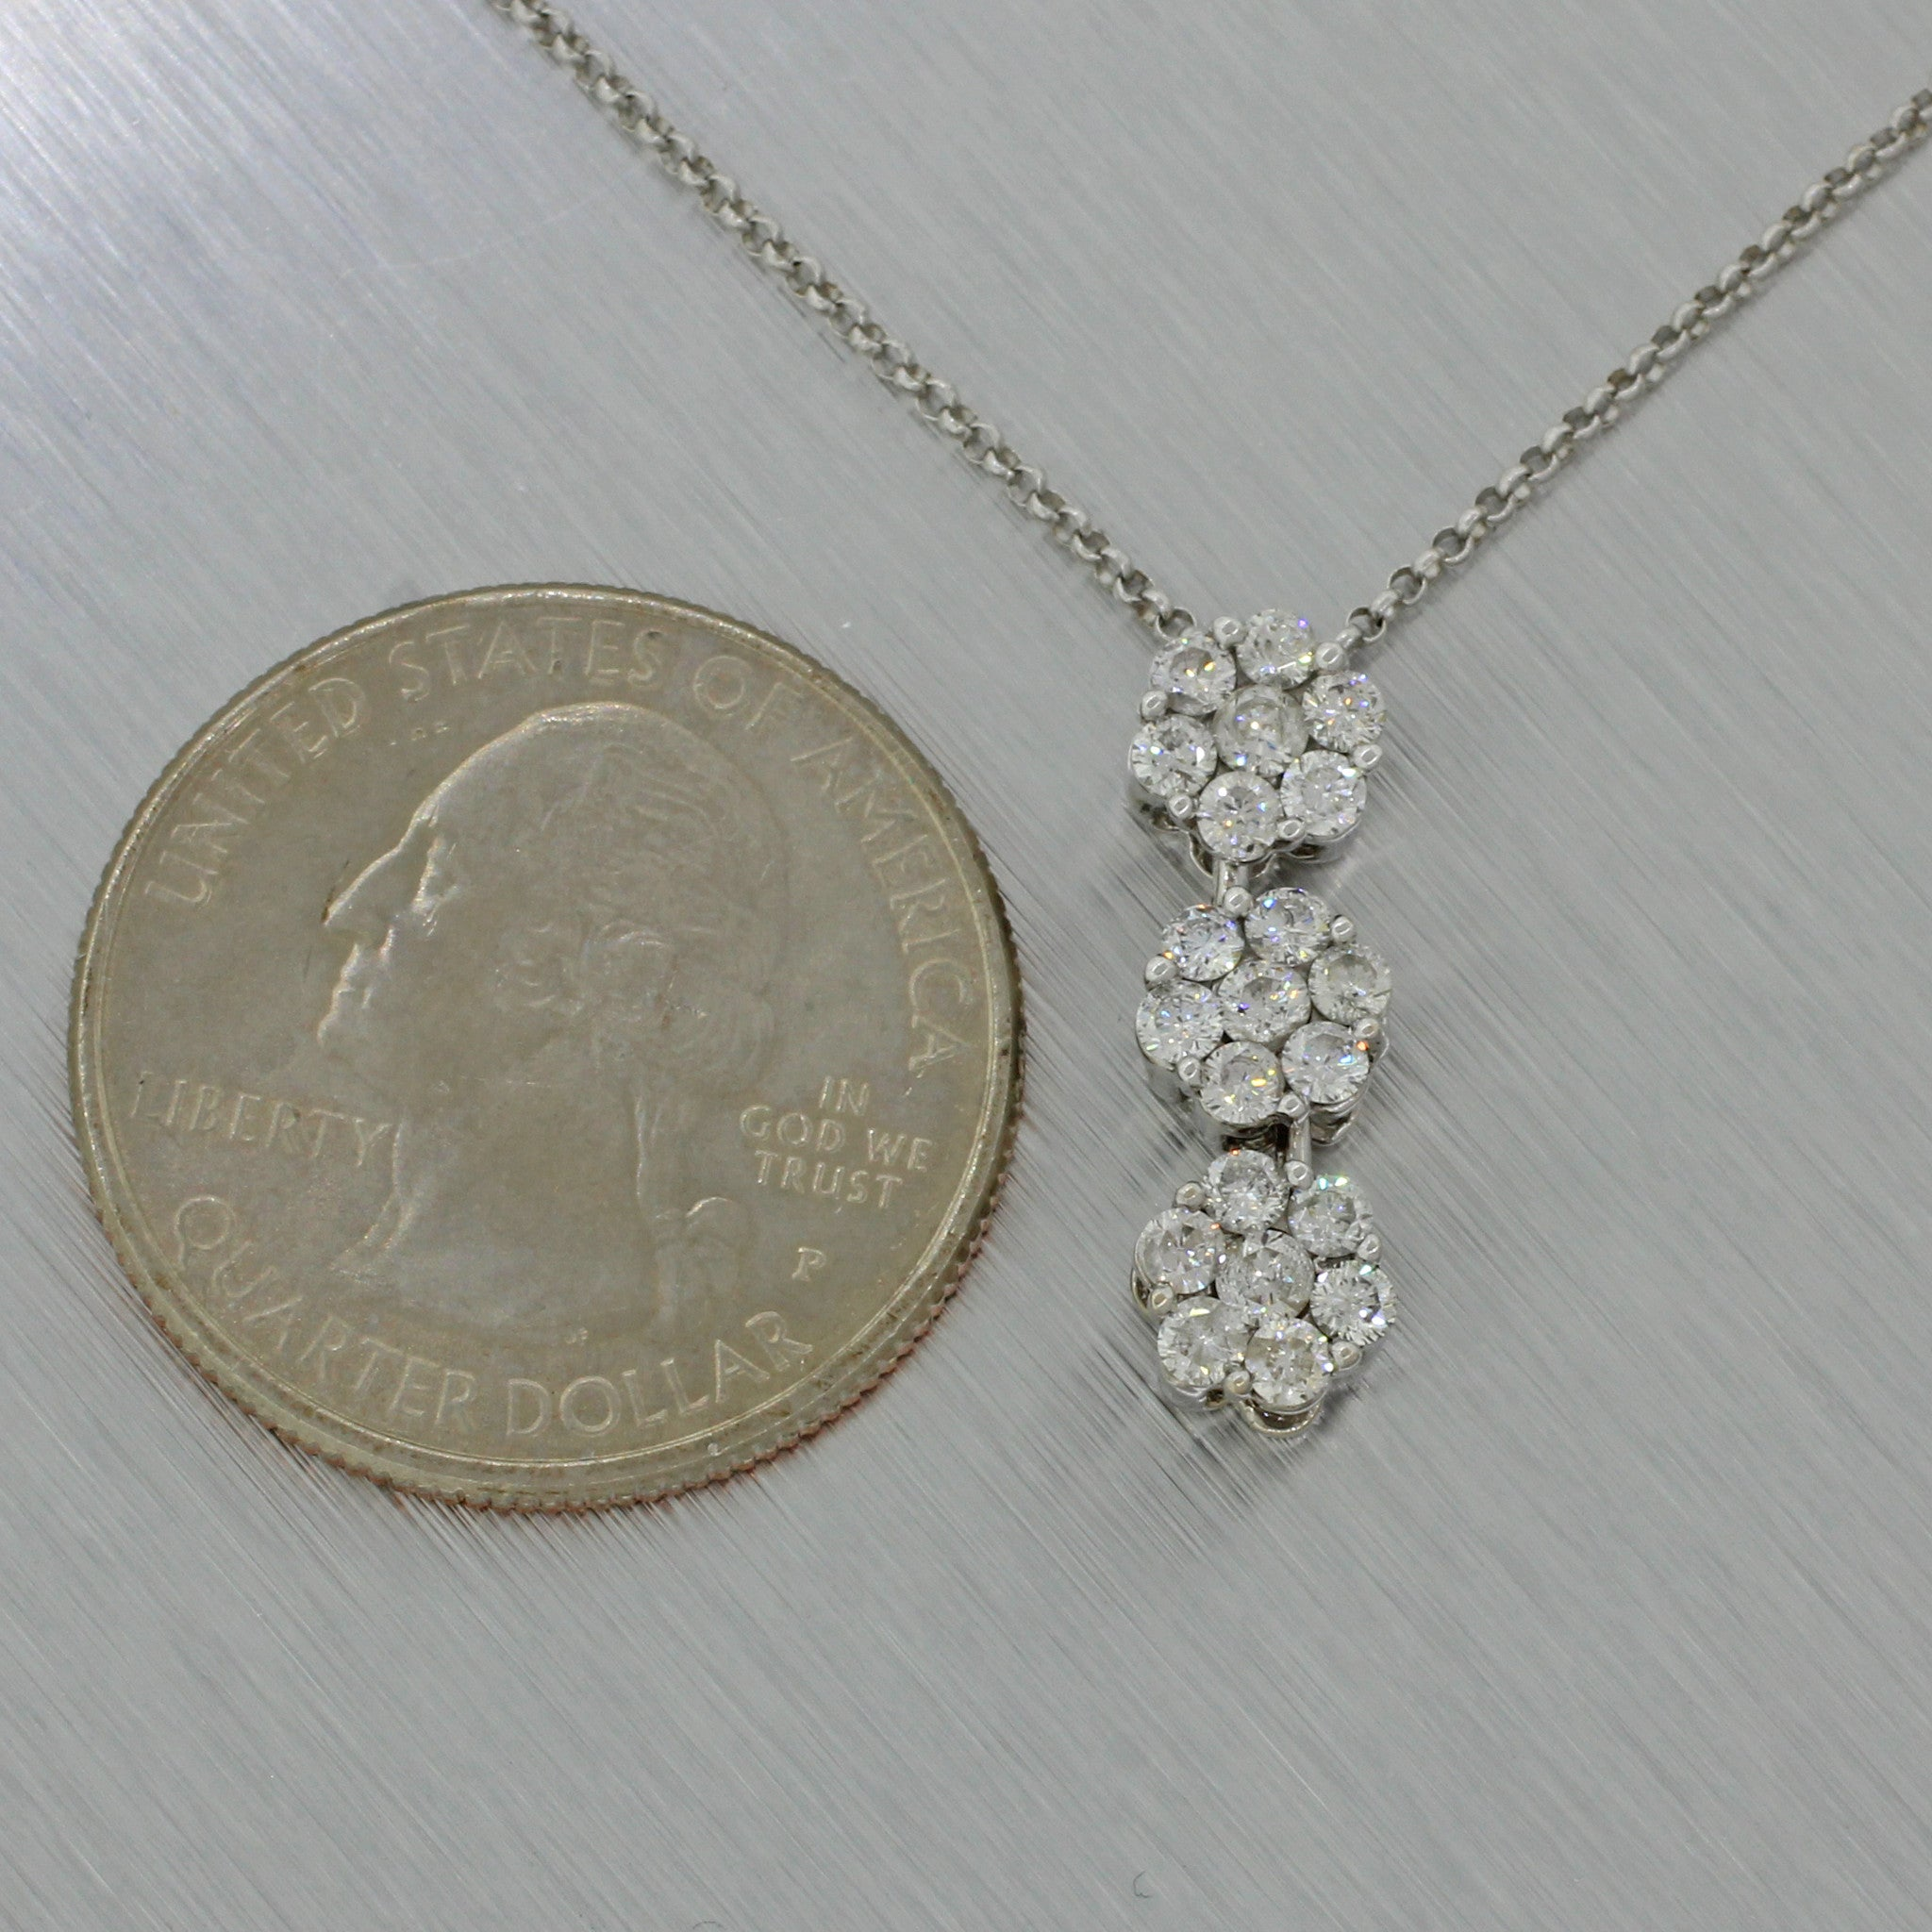 Vintage Estate 14k Solid White Gold Cluster Triple Cluster Floral Pendant Chain